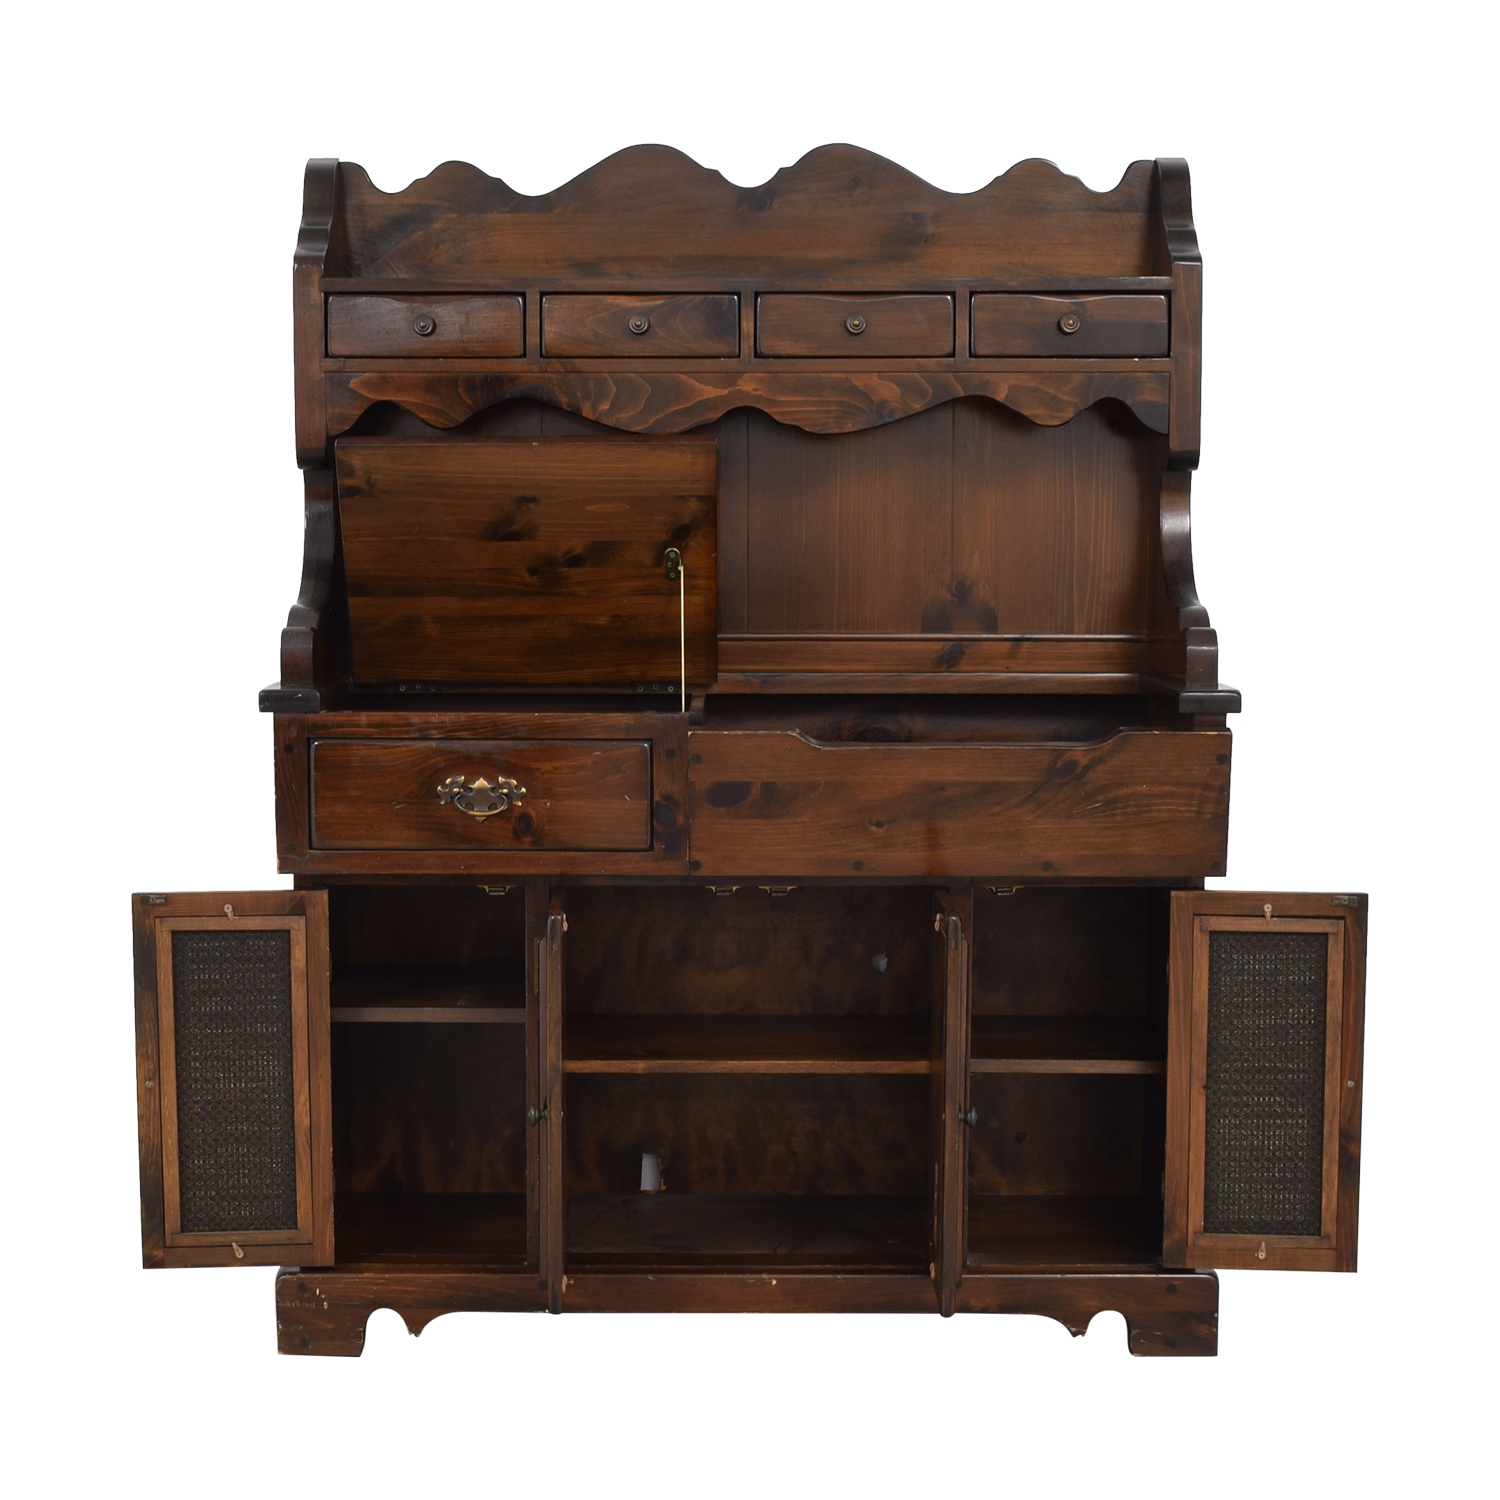 Bennington Pine Bennington Pine Dry Sink Entertainment Cabinet second hand